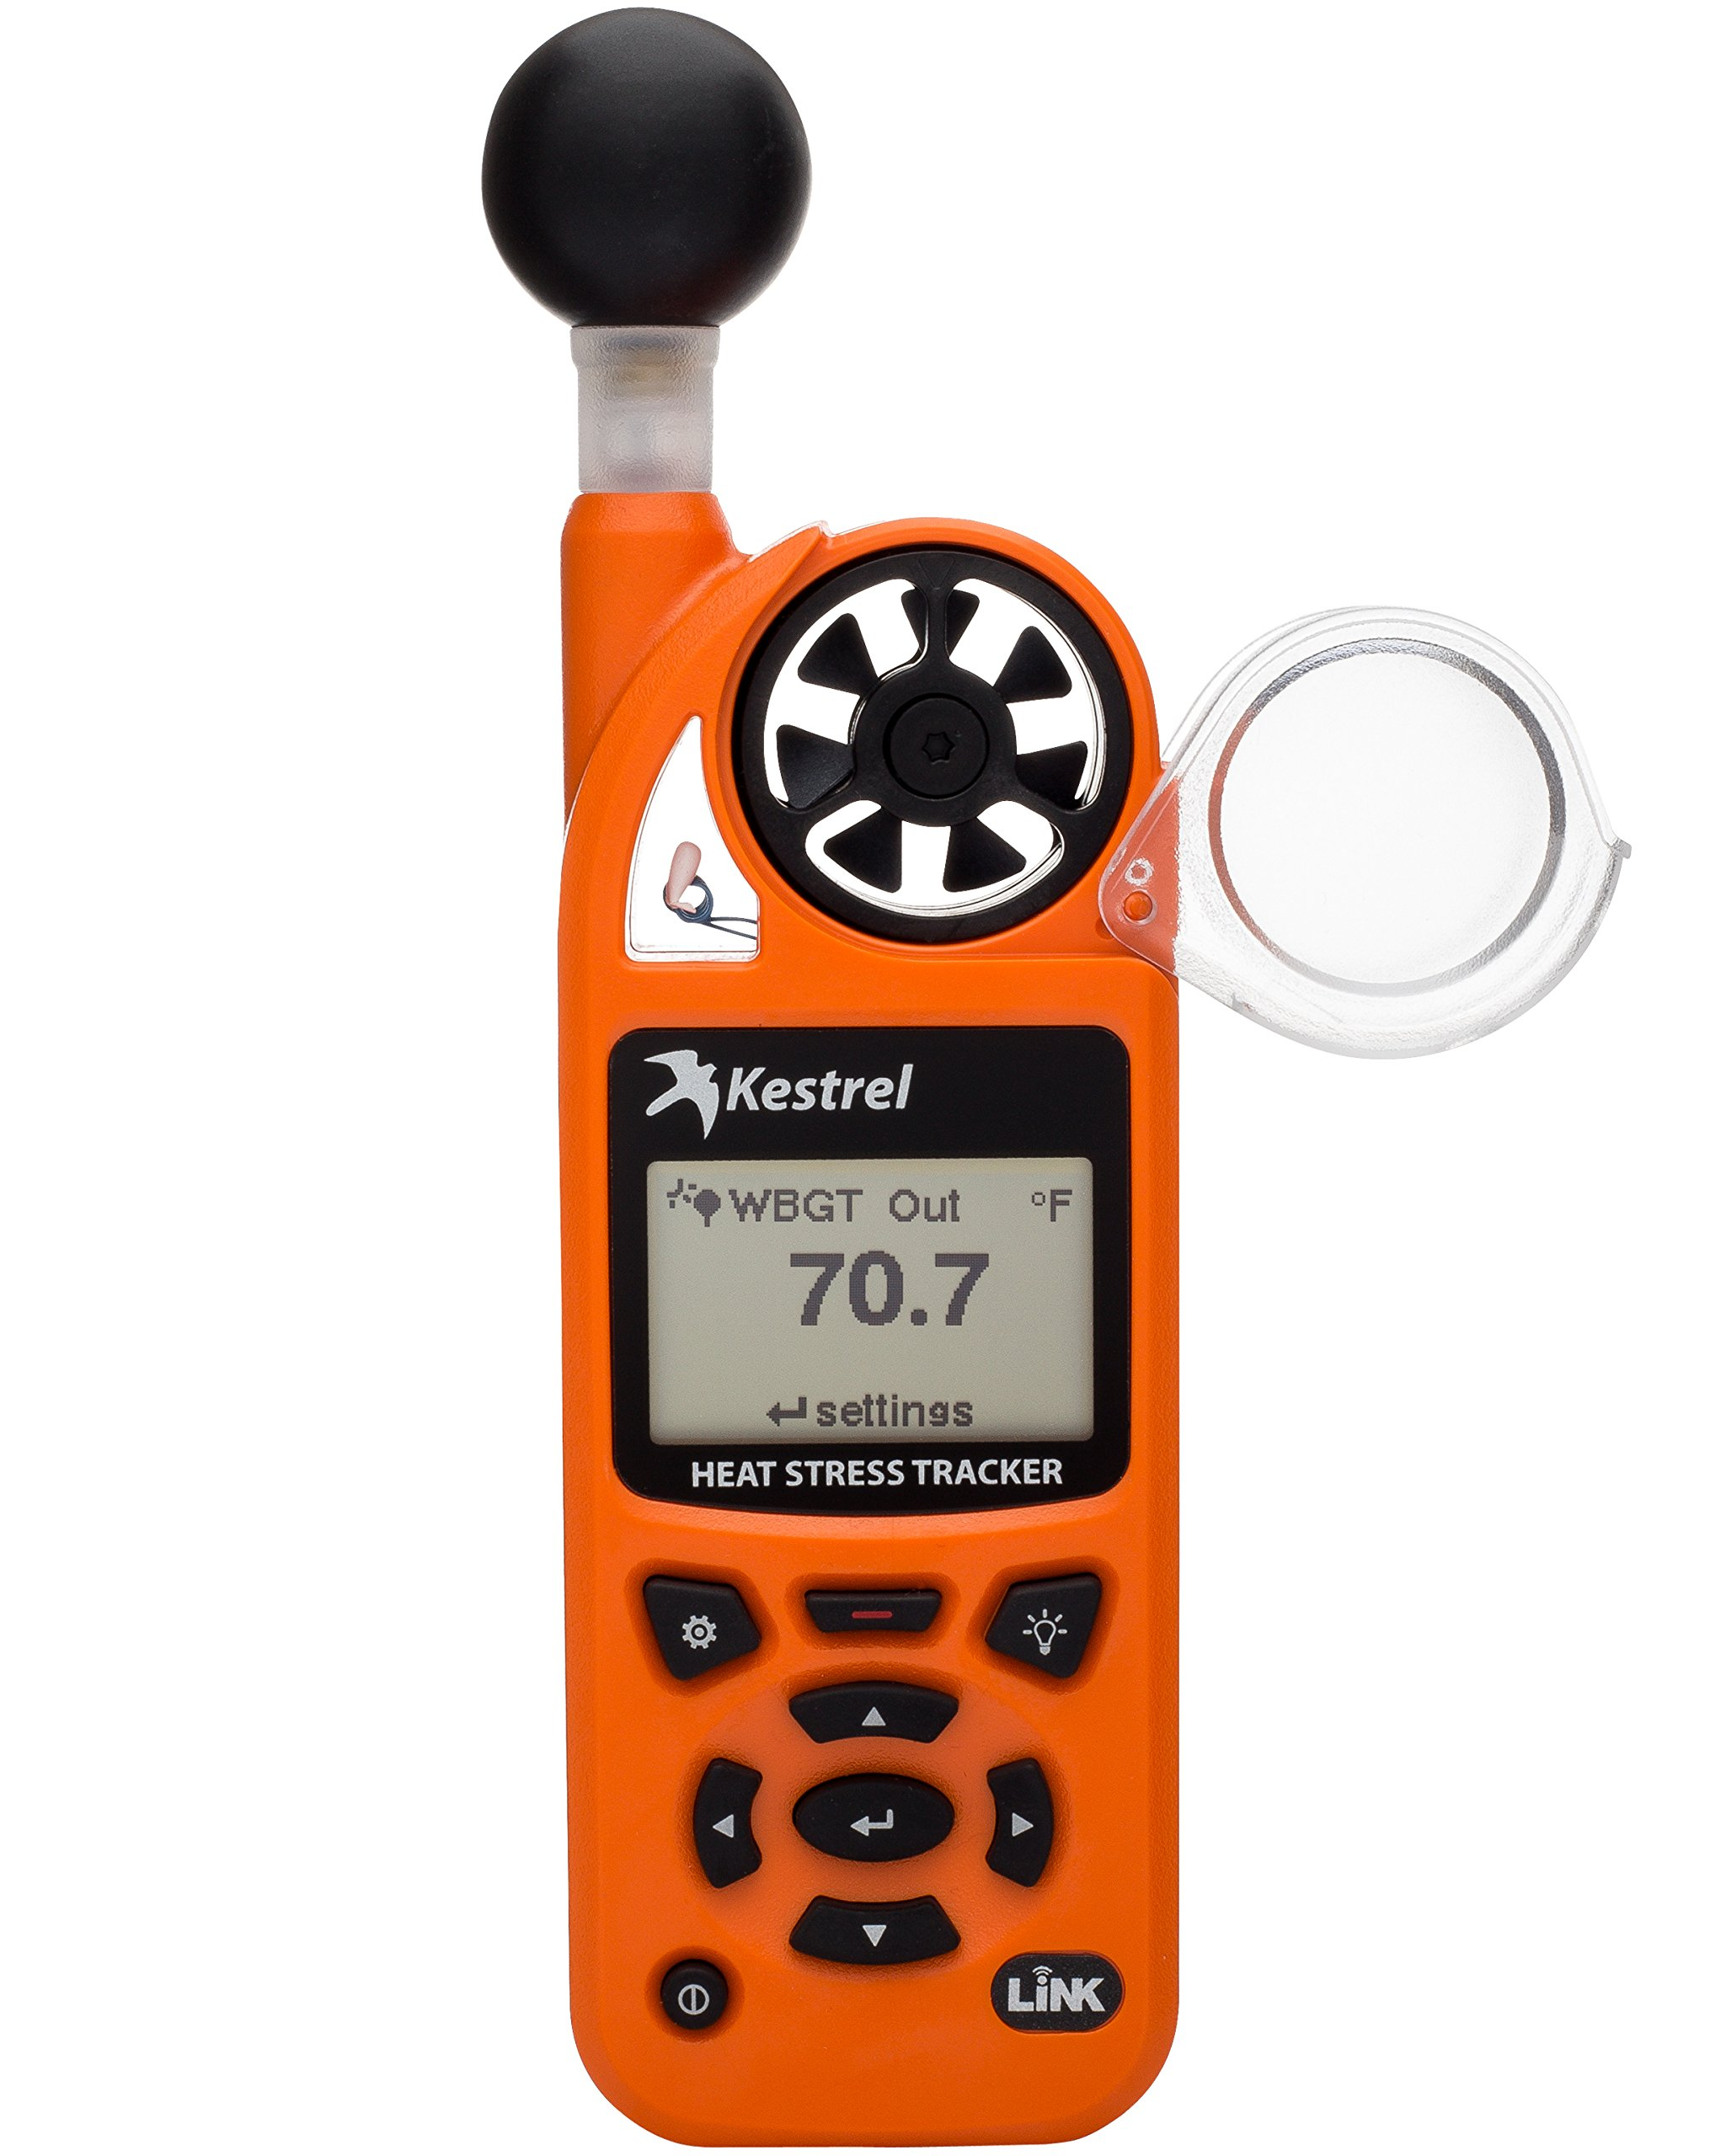 Kestrel 5400 Heat Stress Tracker Pro with Link, Compass and Vane Mount, Orange by Kestrel